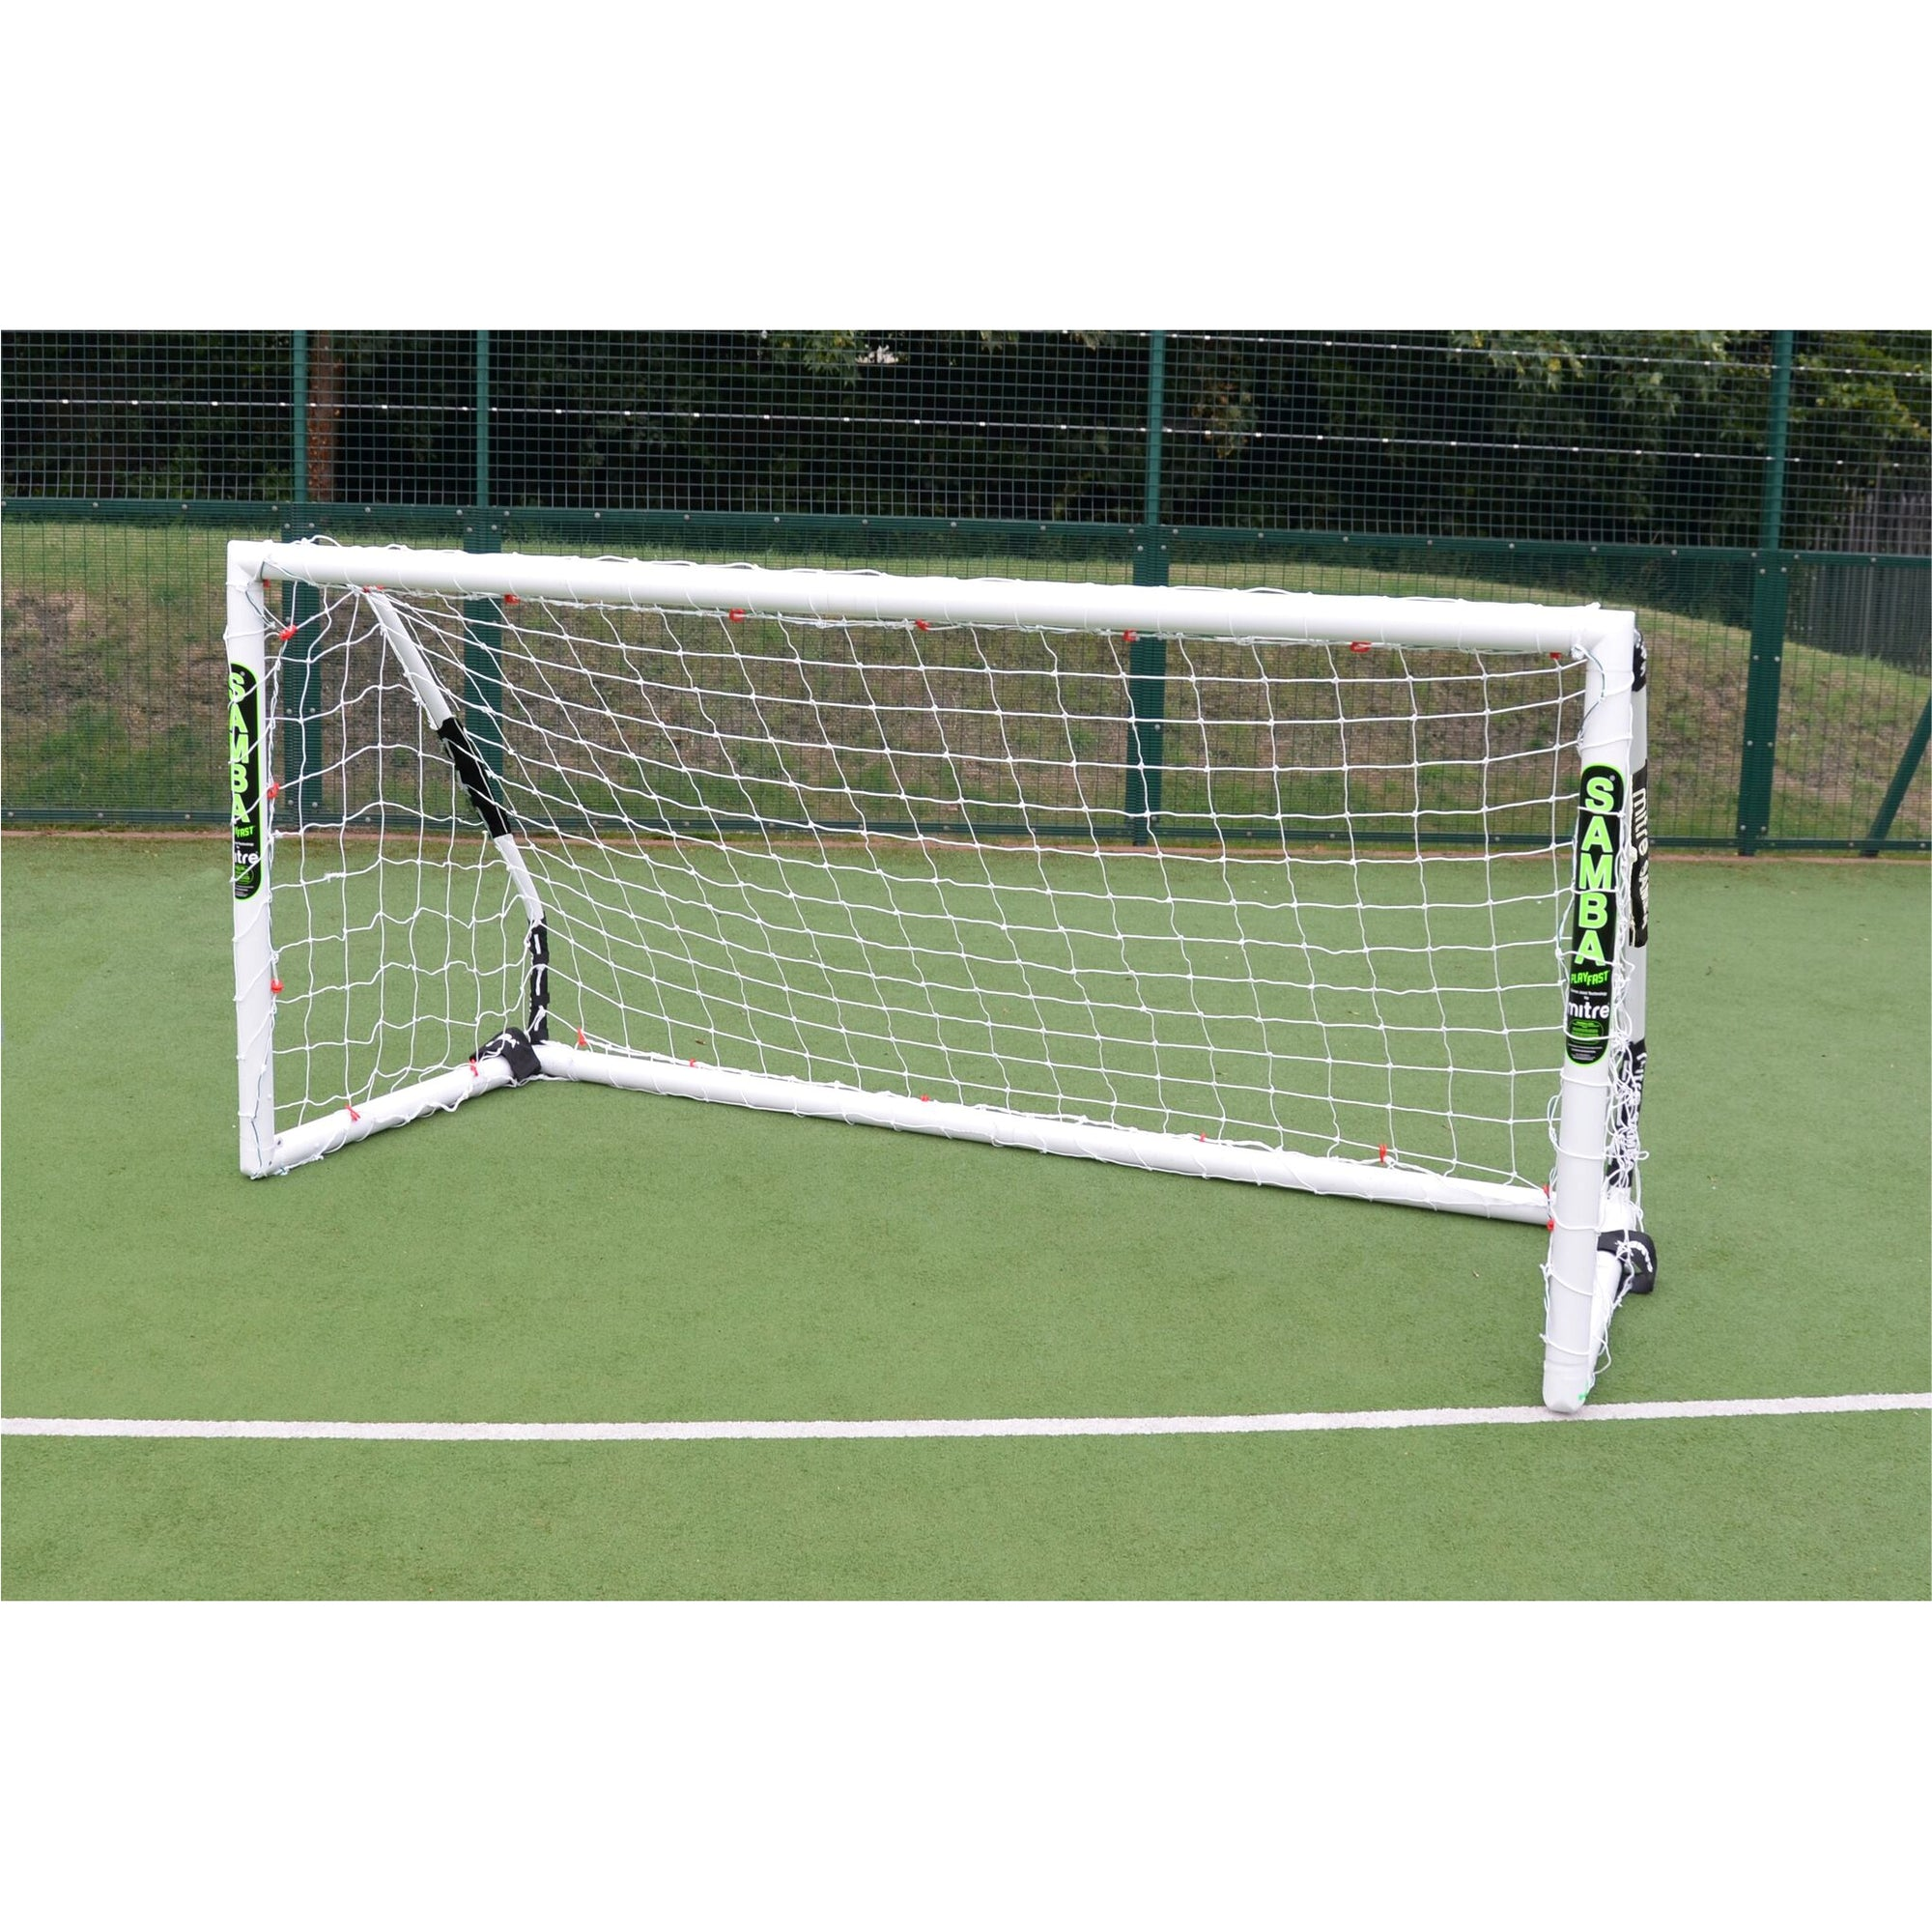 Samba PlayFast Match Goal 8' x 4'